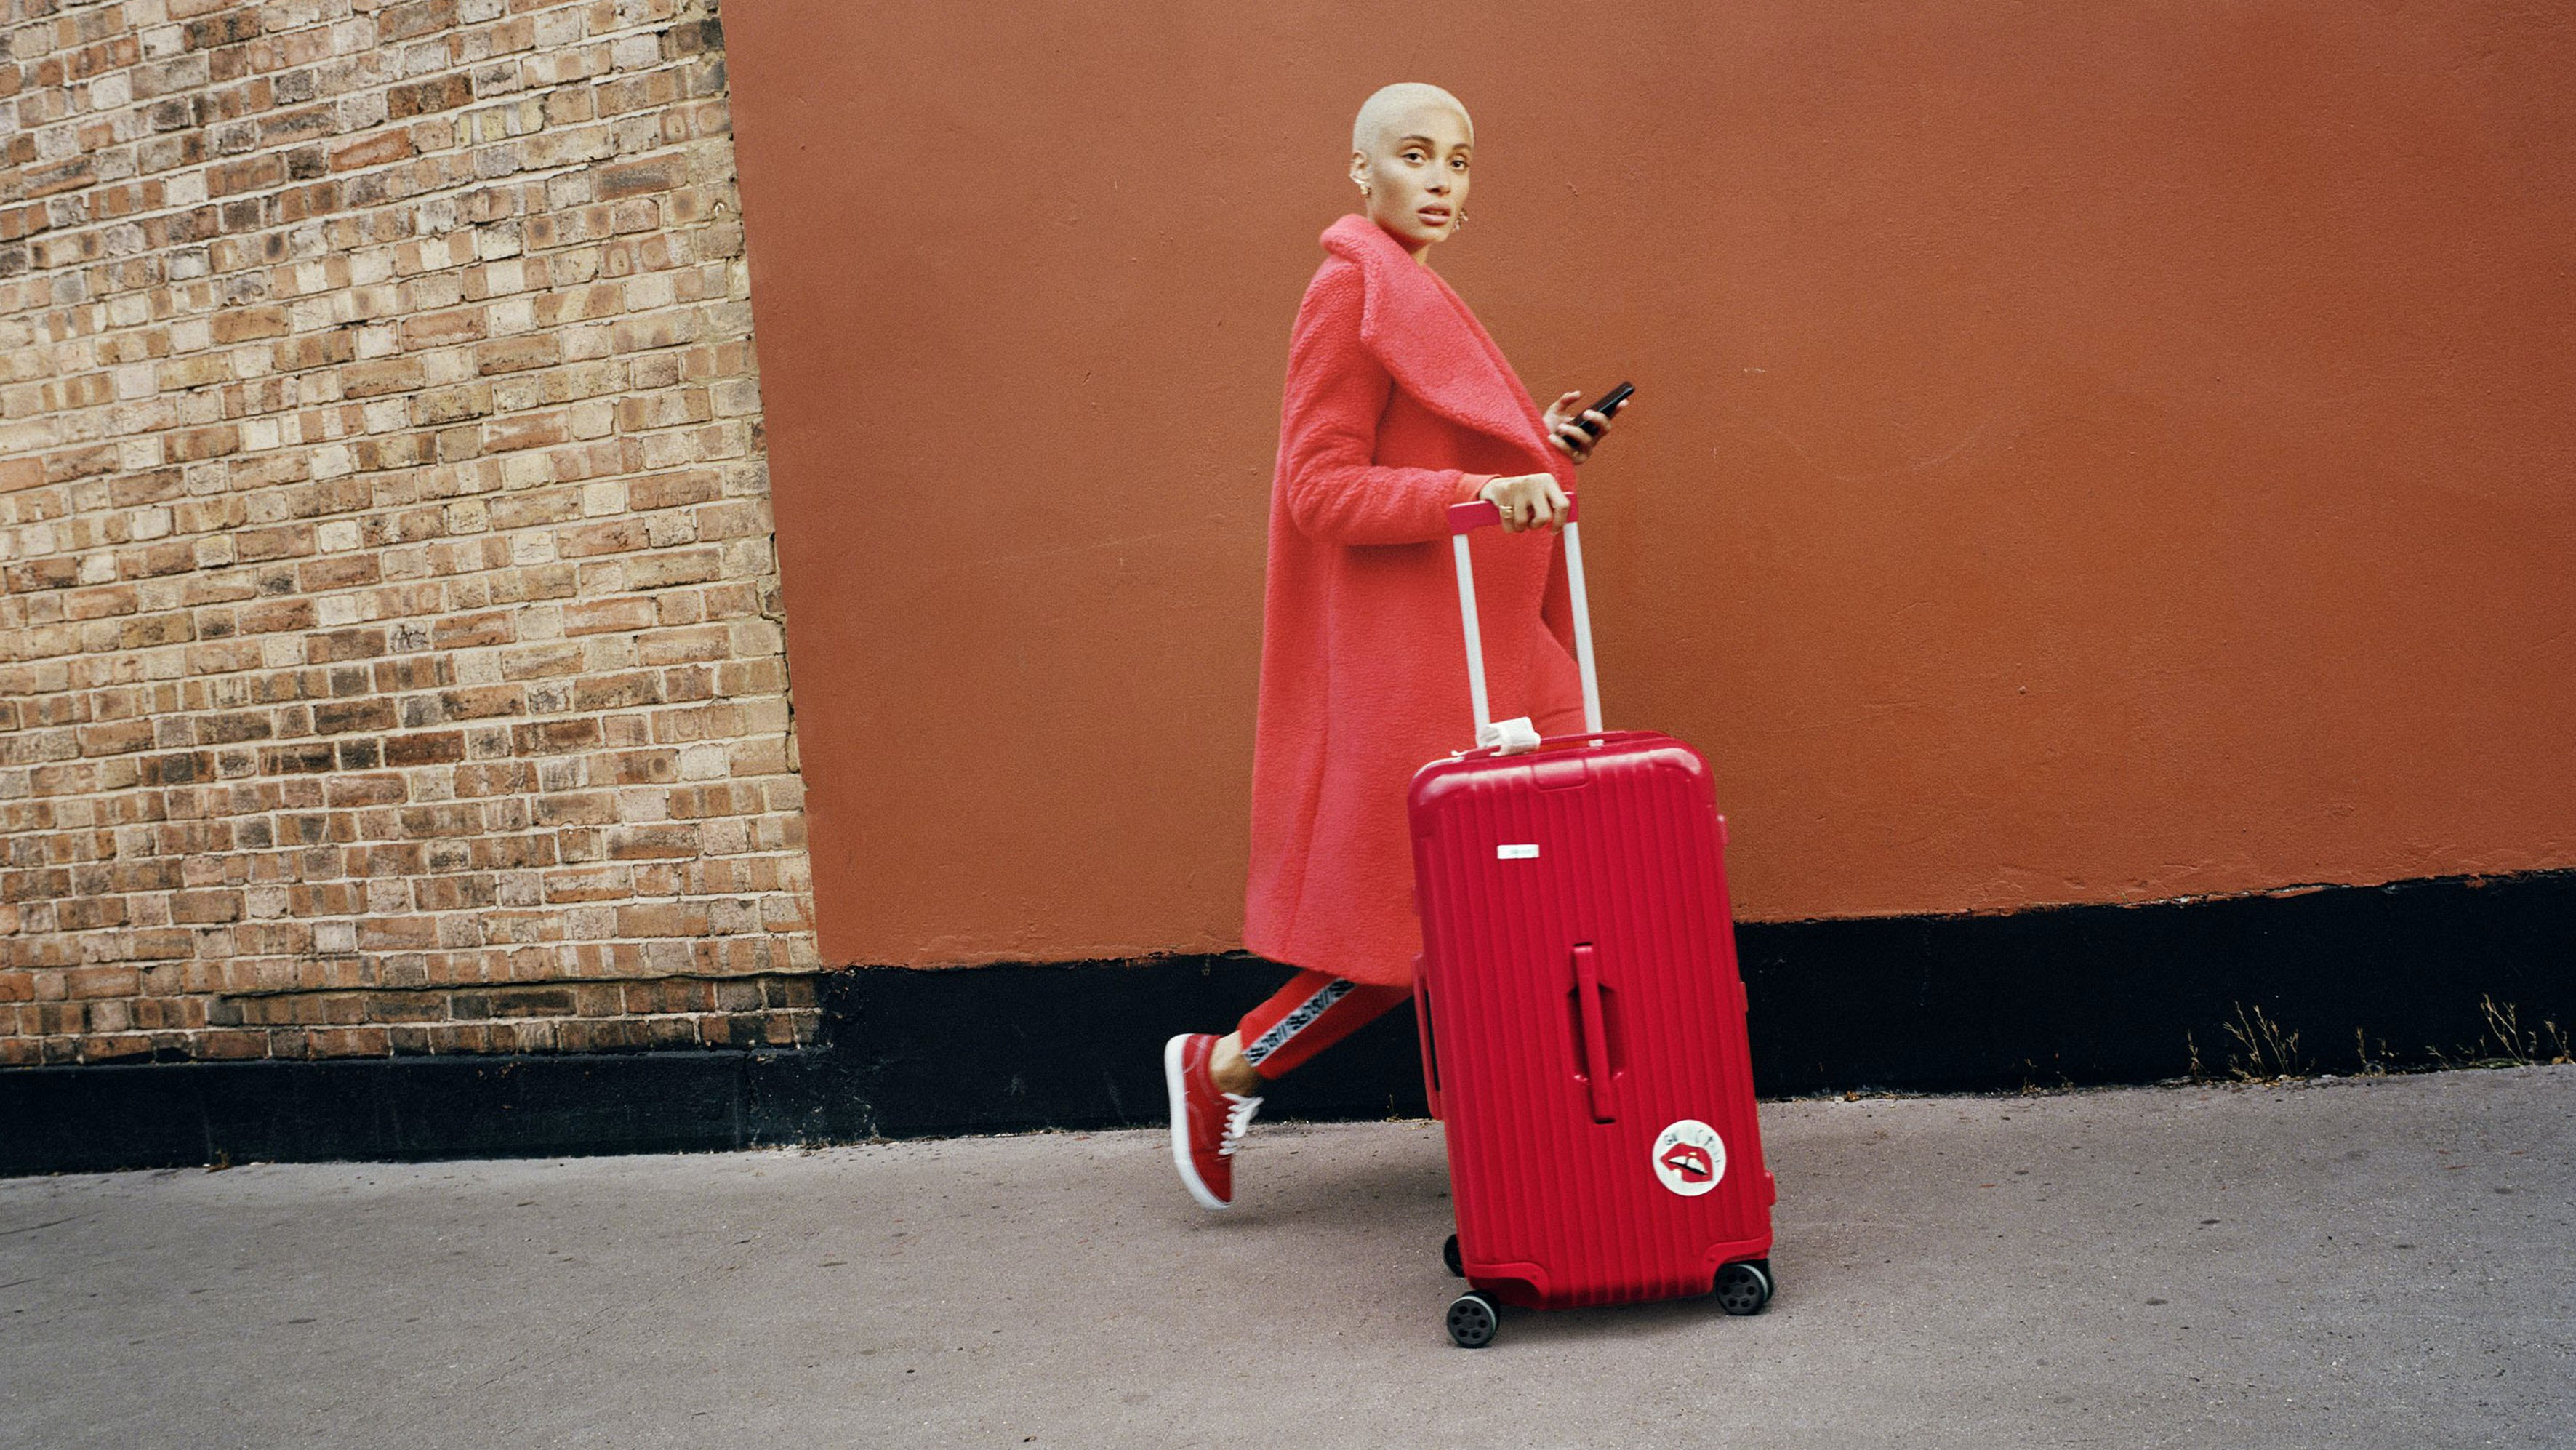 $50 for a Rimowa Look-a-Like: Innovation or Infringement?